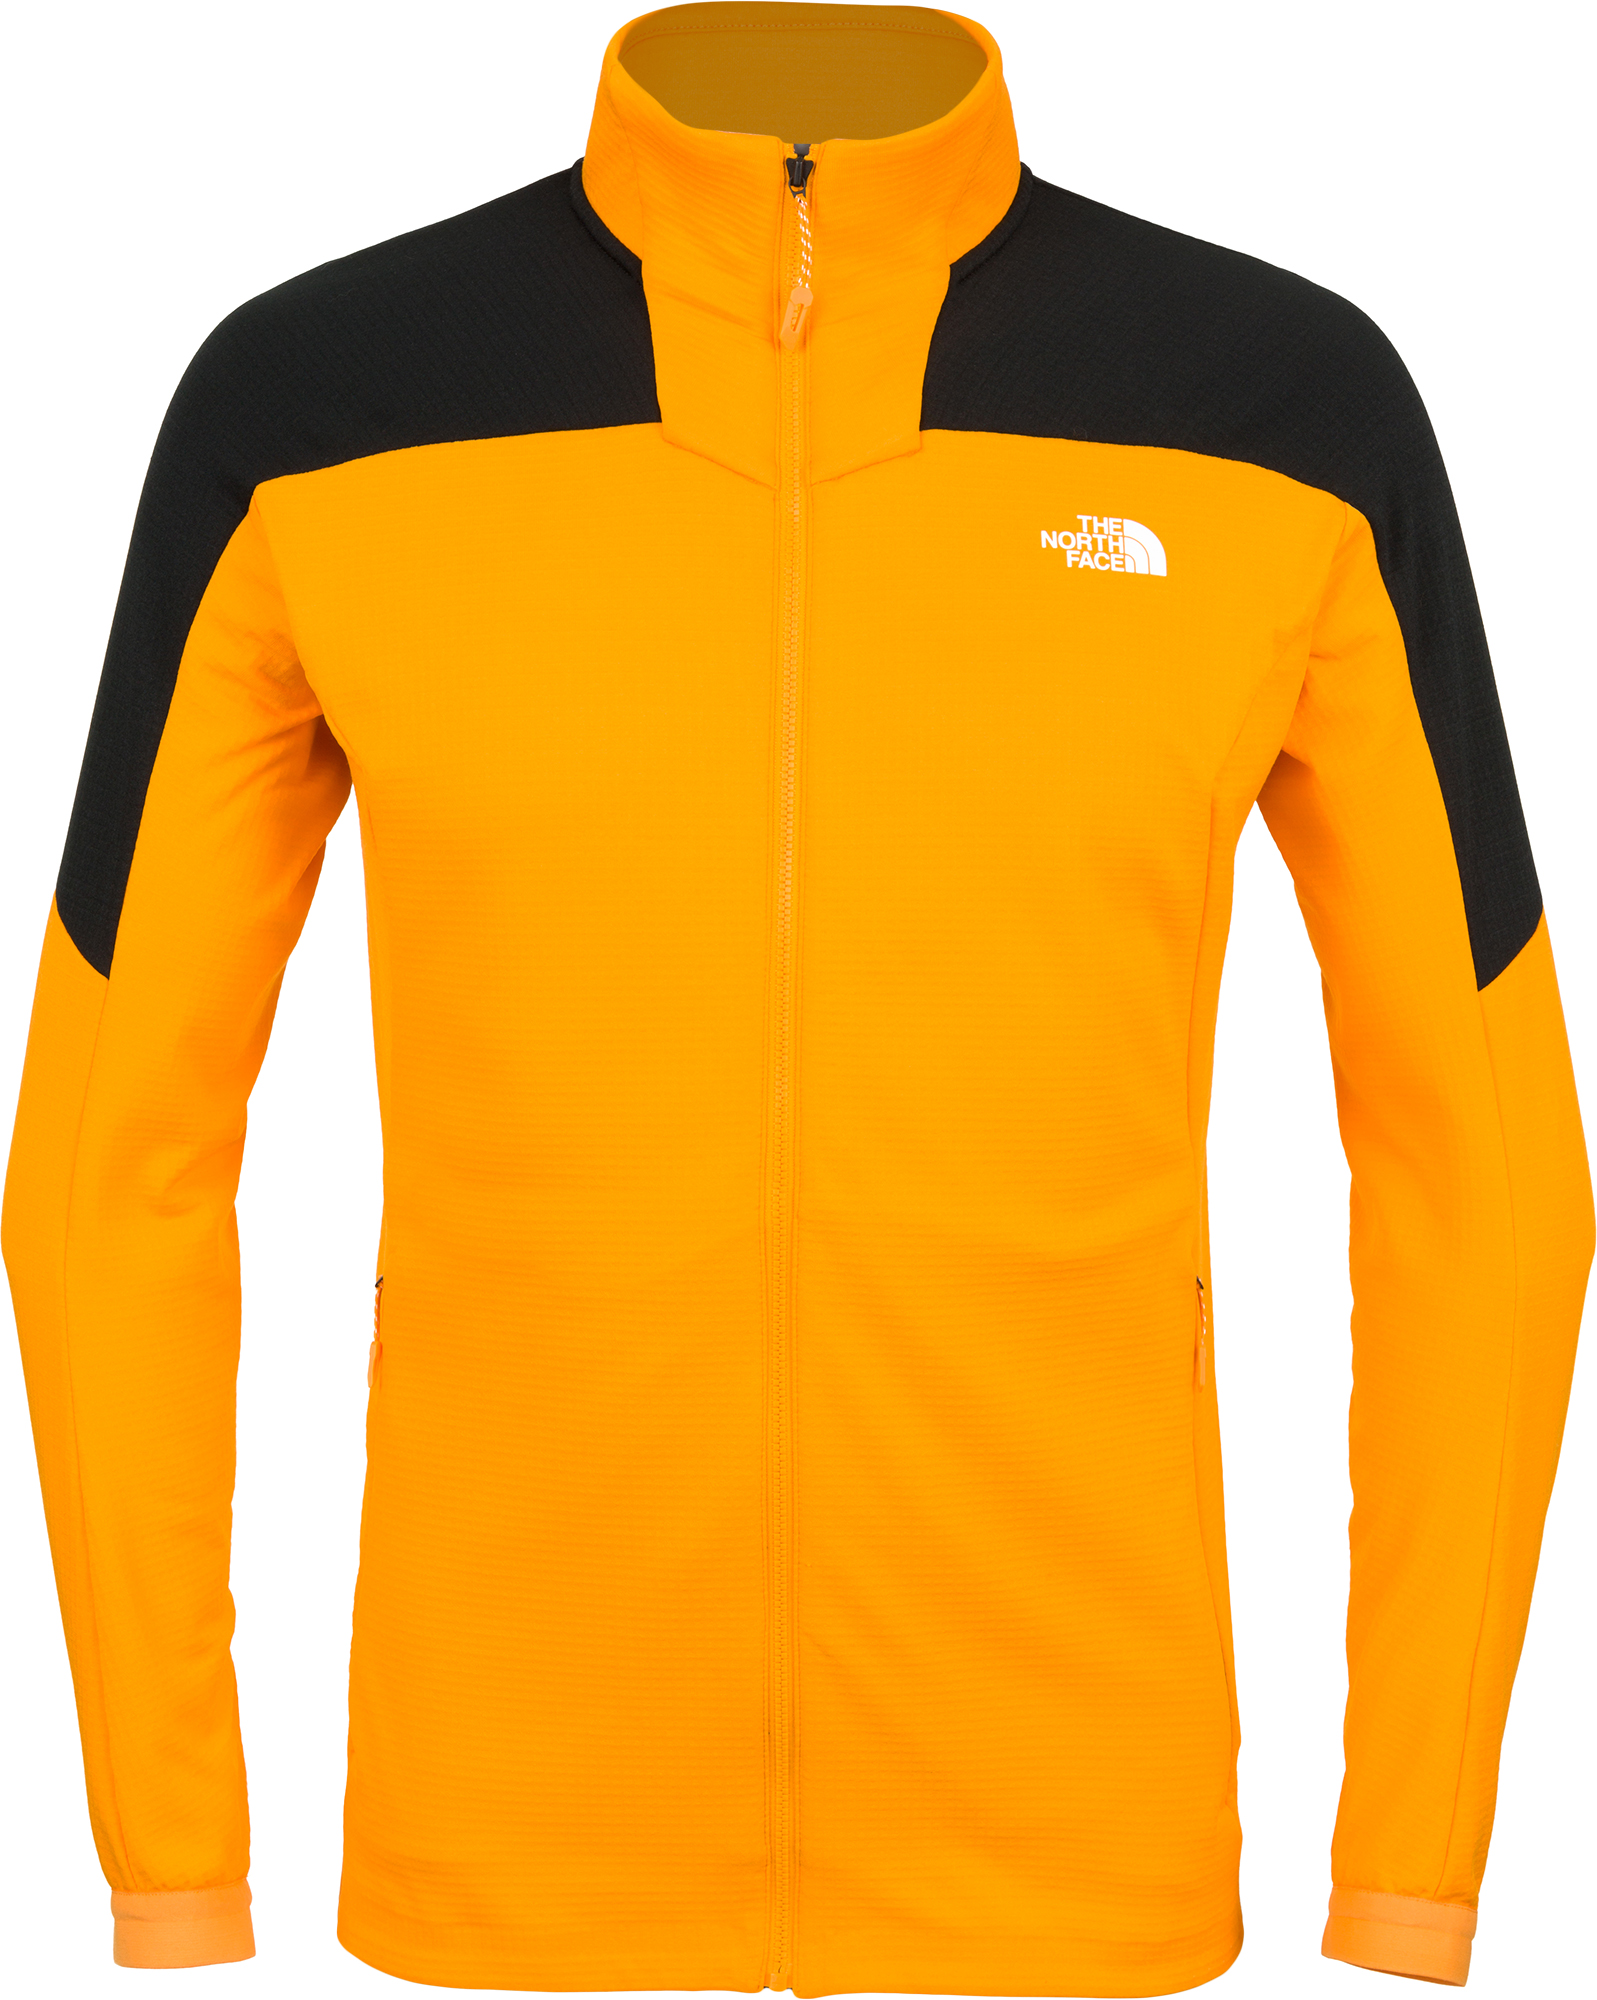 The North Face Джемпер мужской The North Face Impendor FZ Mid Layer, размер 44-46